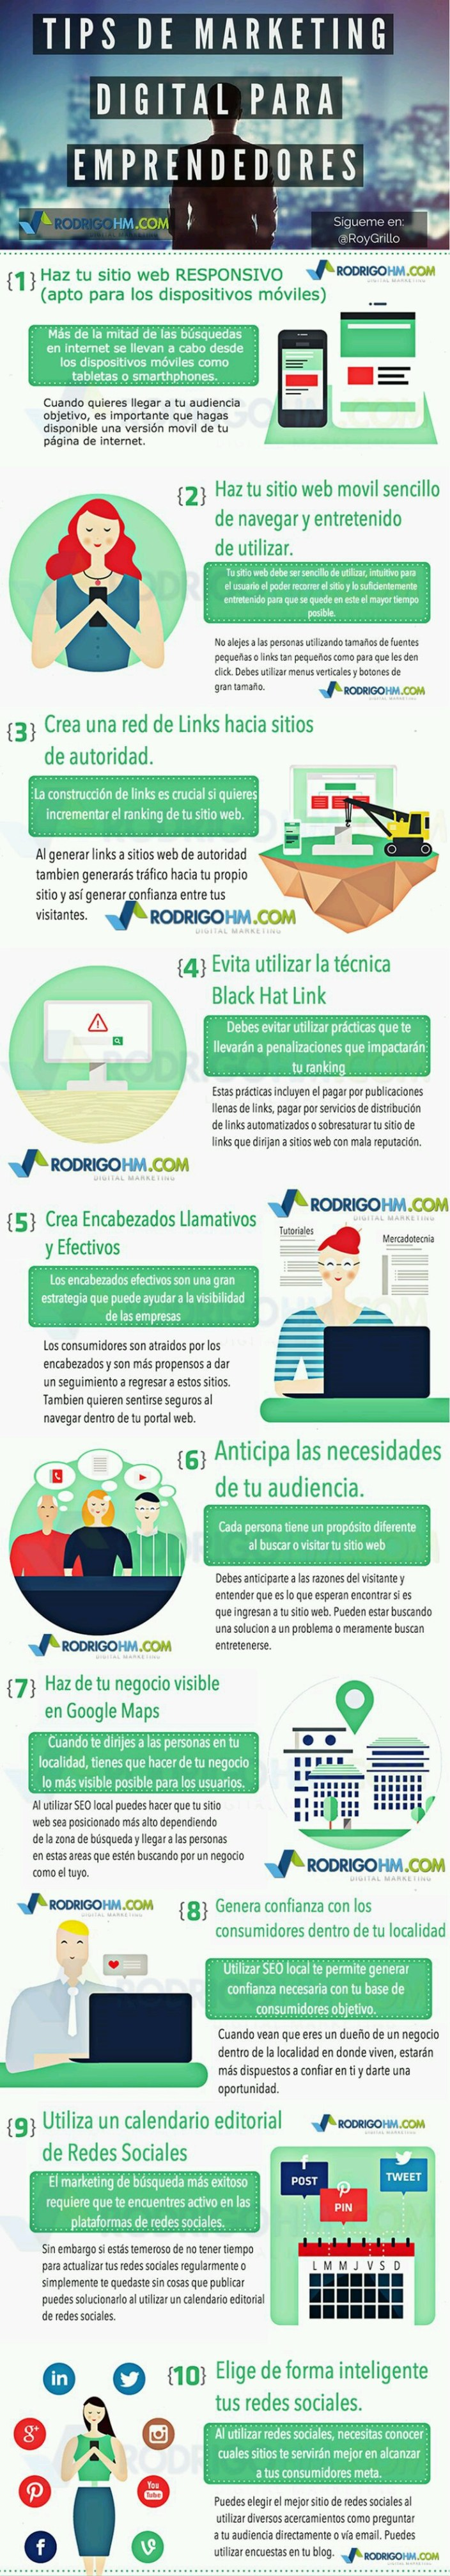 emprendedor, entrepreneur, infografía, marketing digital, pinterest, pyme, startup, tips, Seo local, neuromarketing, efecto zeigarnik, campaña teaser, viralizacion, online, offline, serge moscovici, paralisis de eleccion, up selling, cross selling, small data